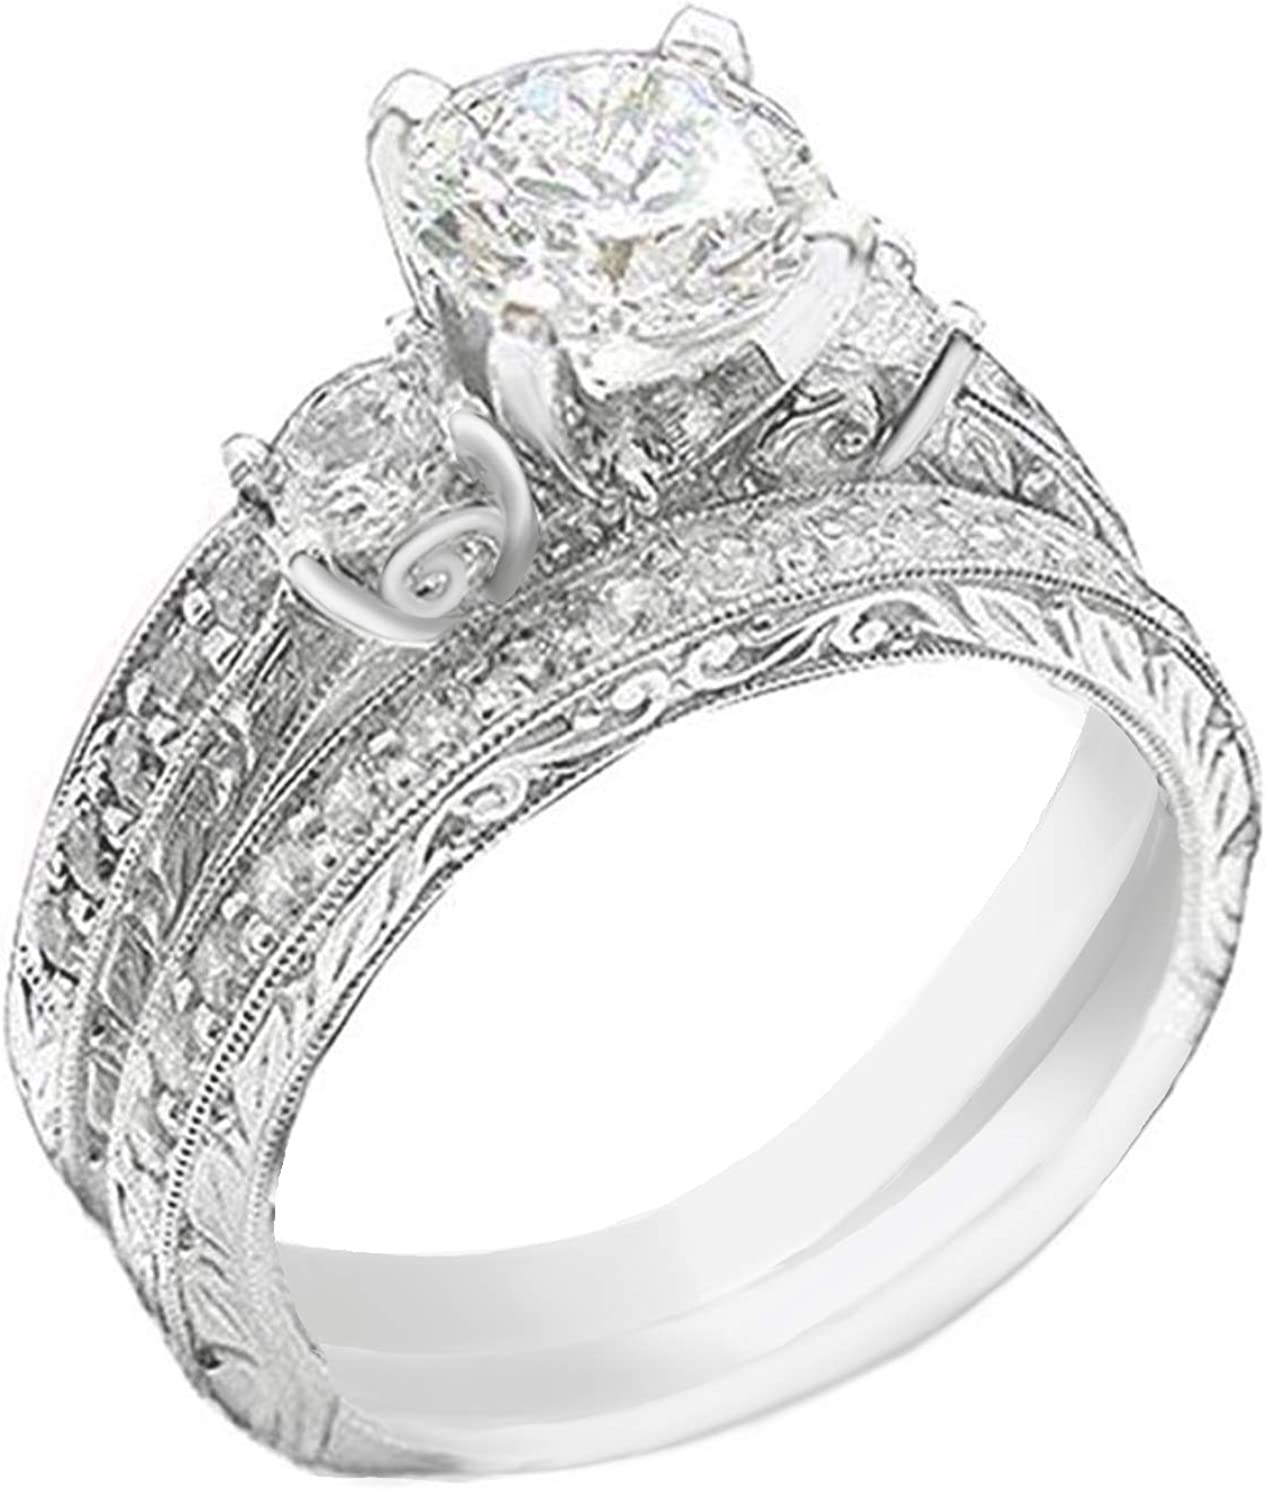 Venetia Pave Realistic 1.5 Carat Limited time cheap sale Ring Set Diamond Band Simulated National uniform free shipping